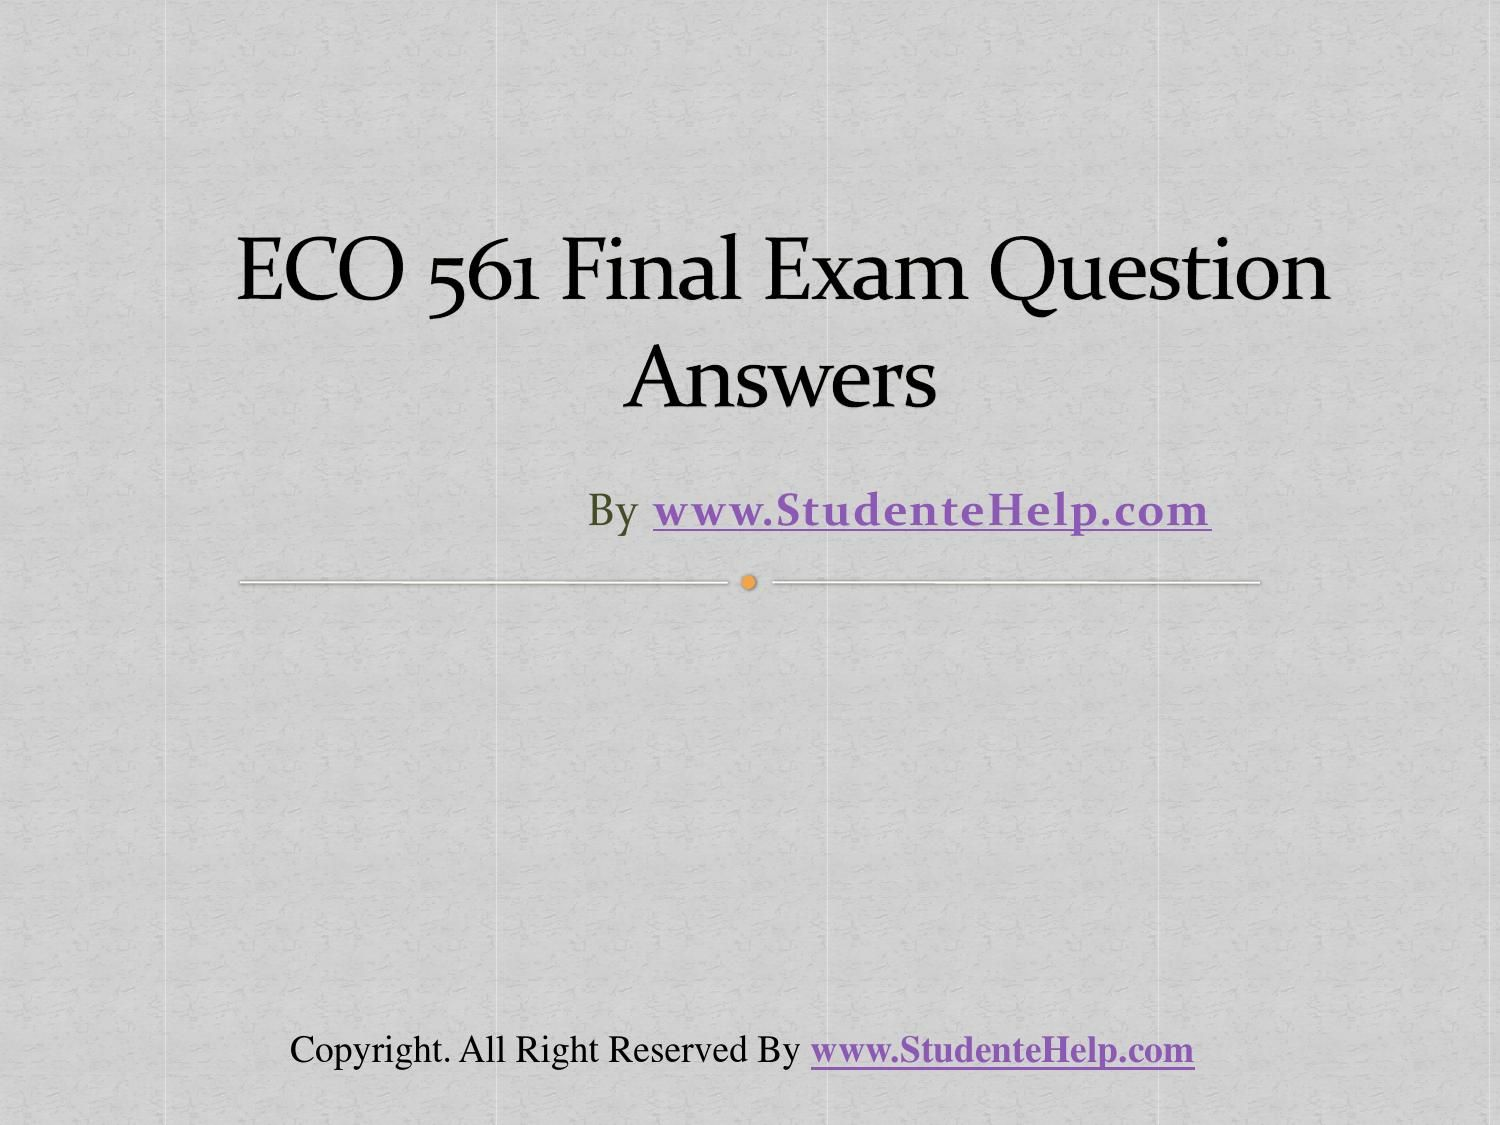 eco final exam latest uop final exam questions answers law